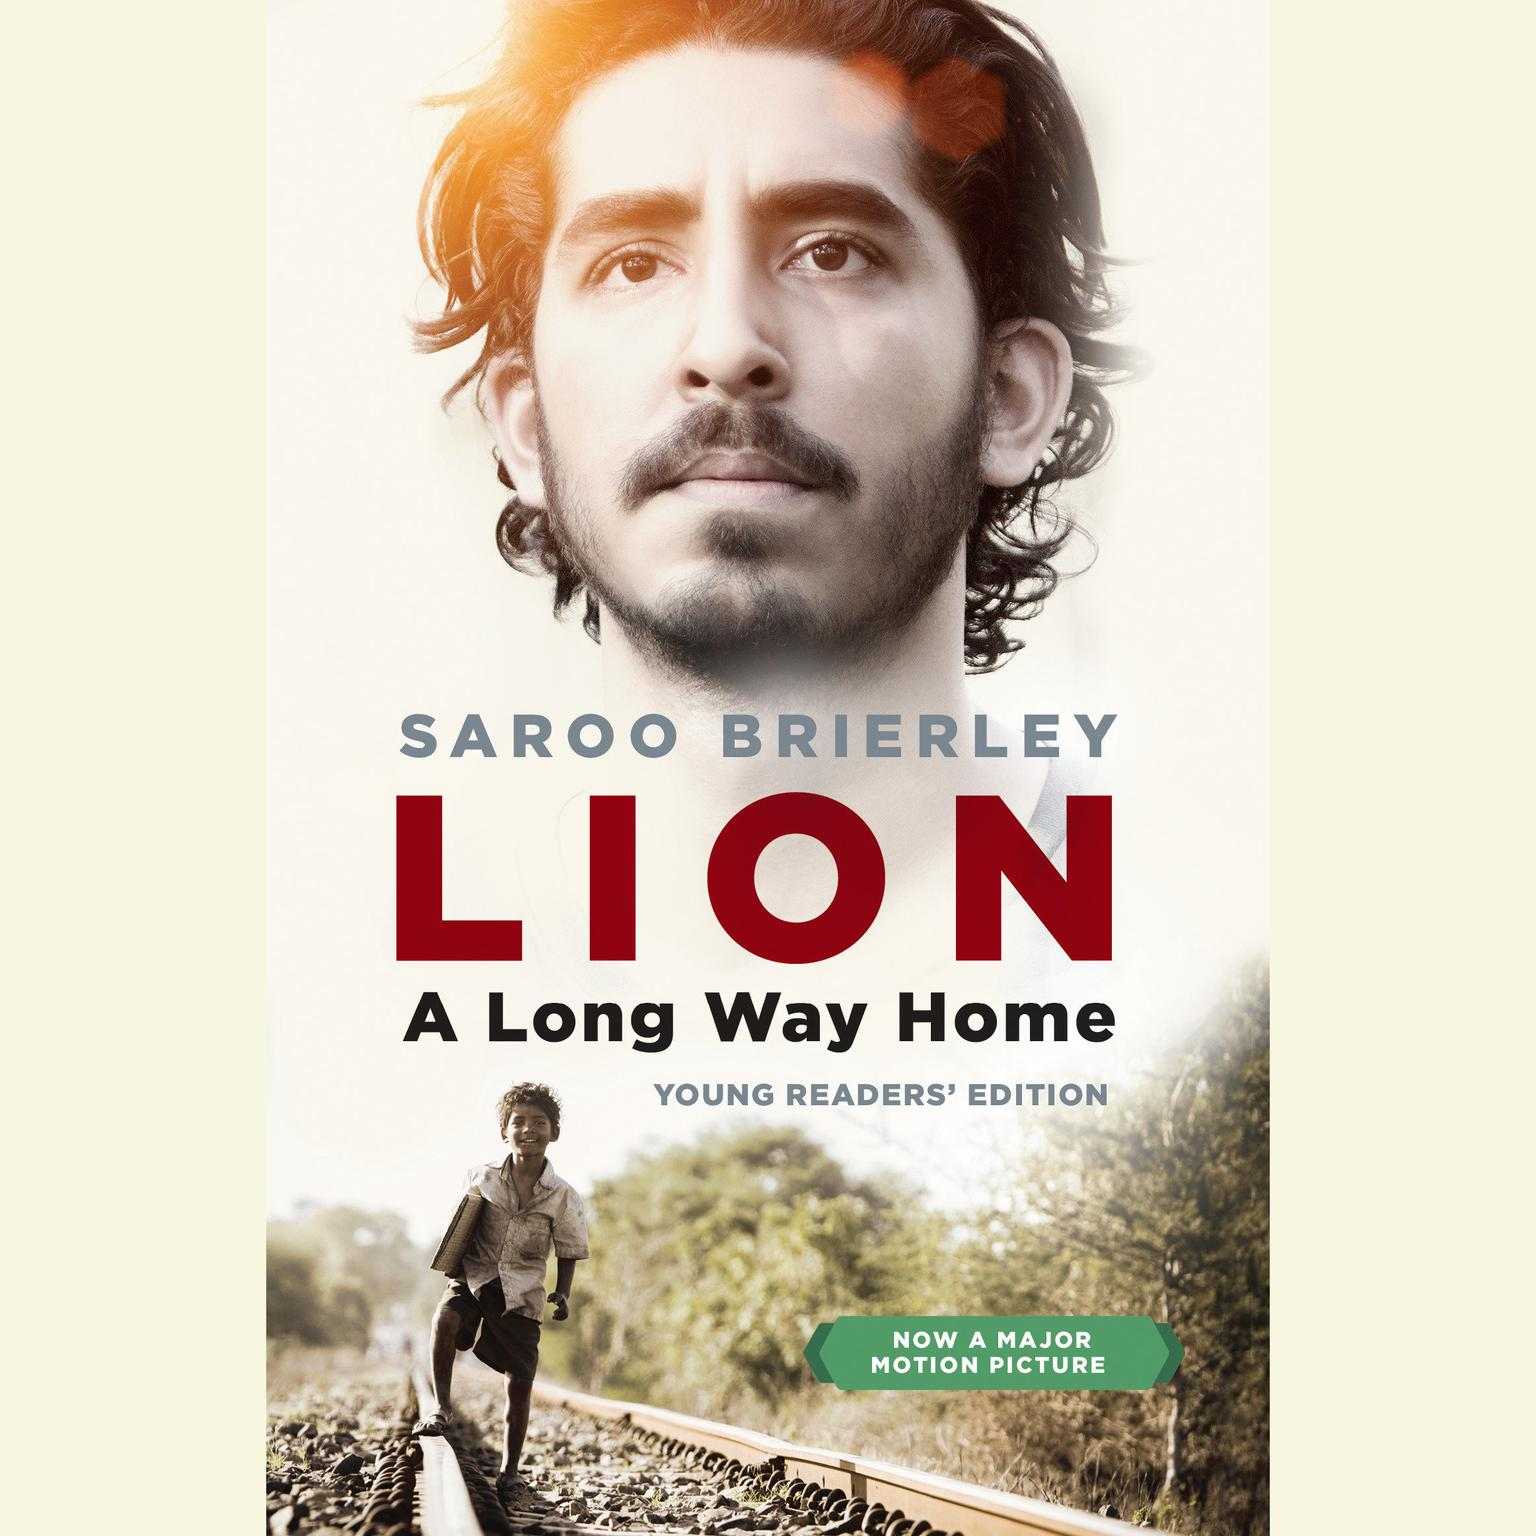 Printable Lion: A Long Way Home Young Readers' Edition Audiobook Cover Art